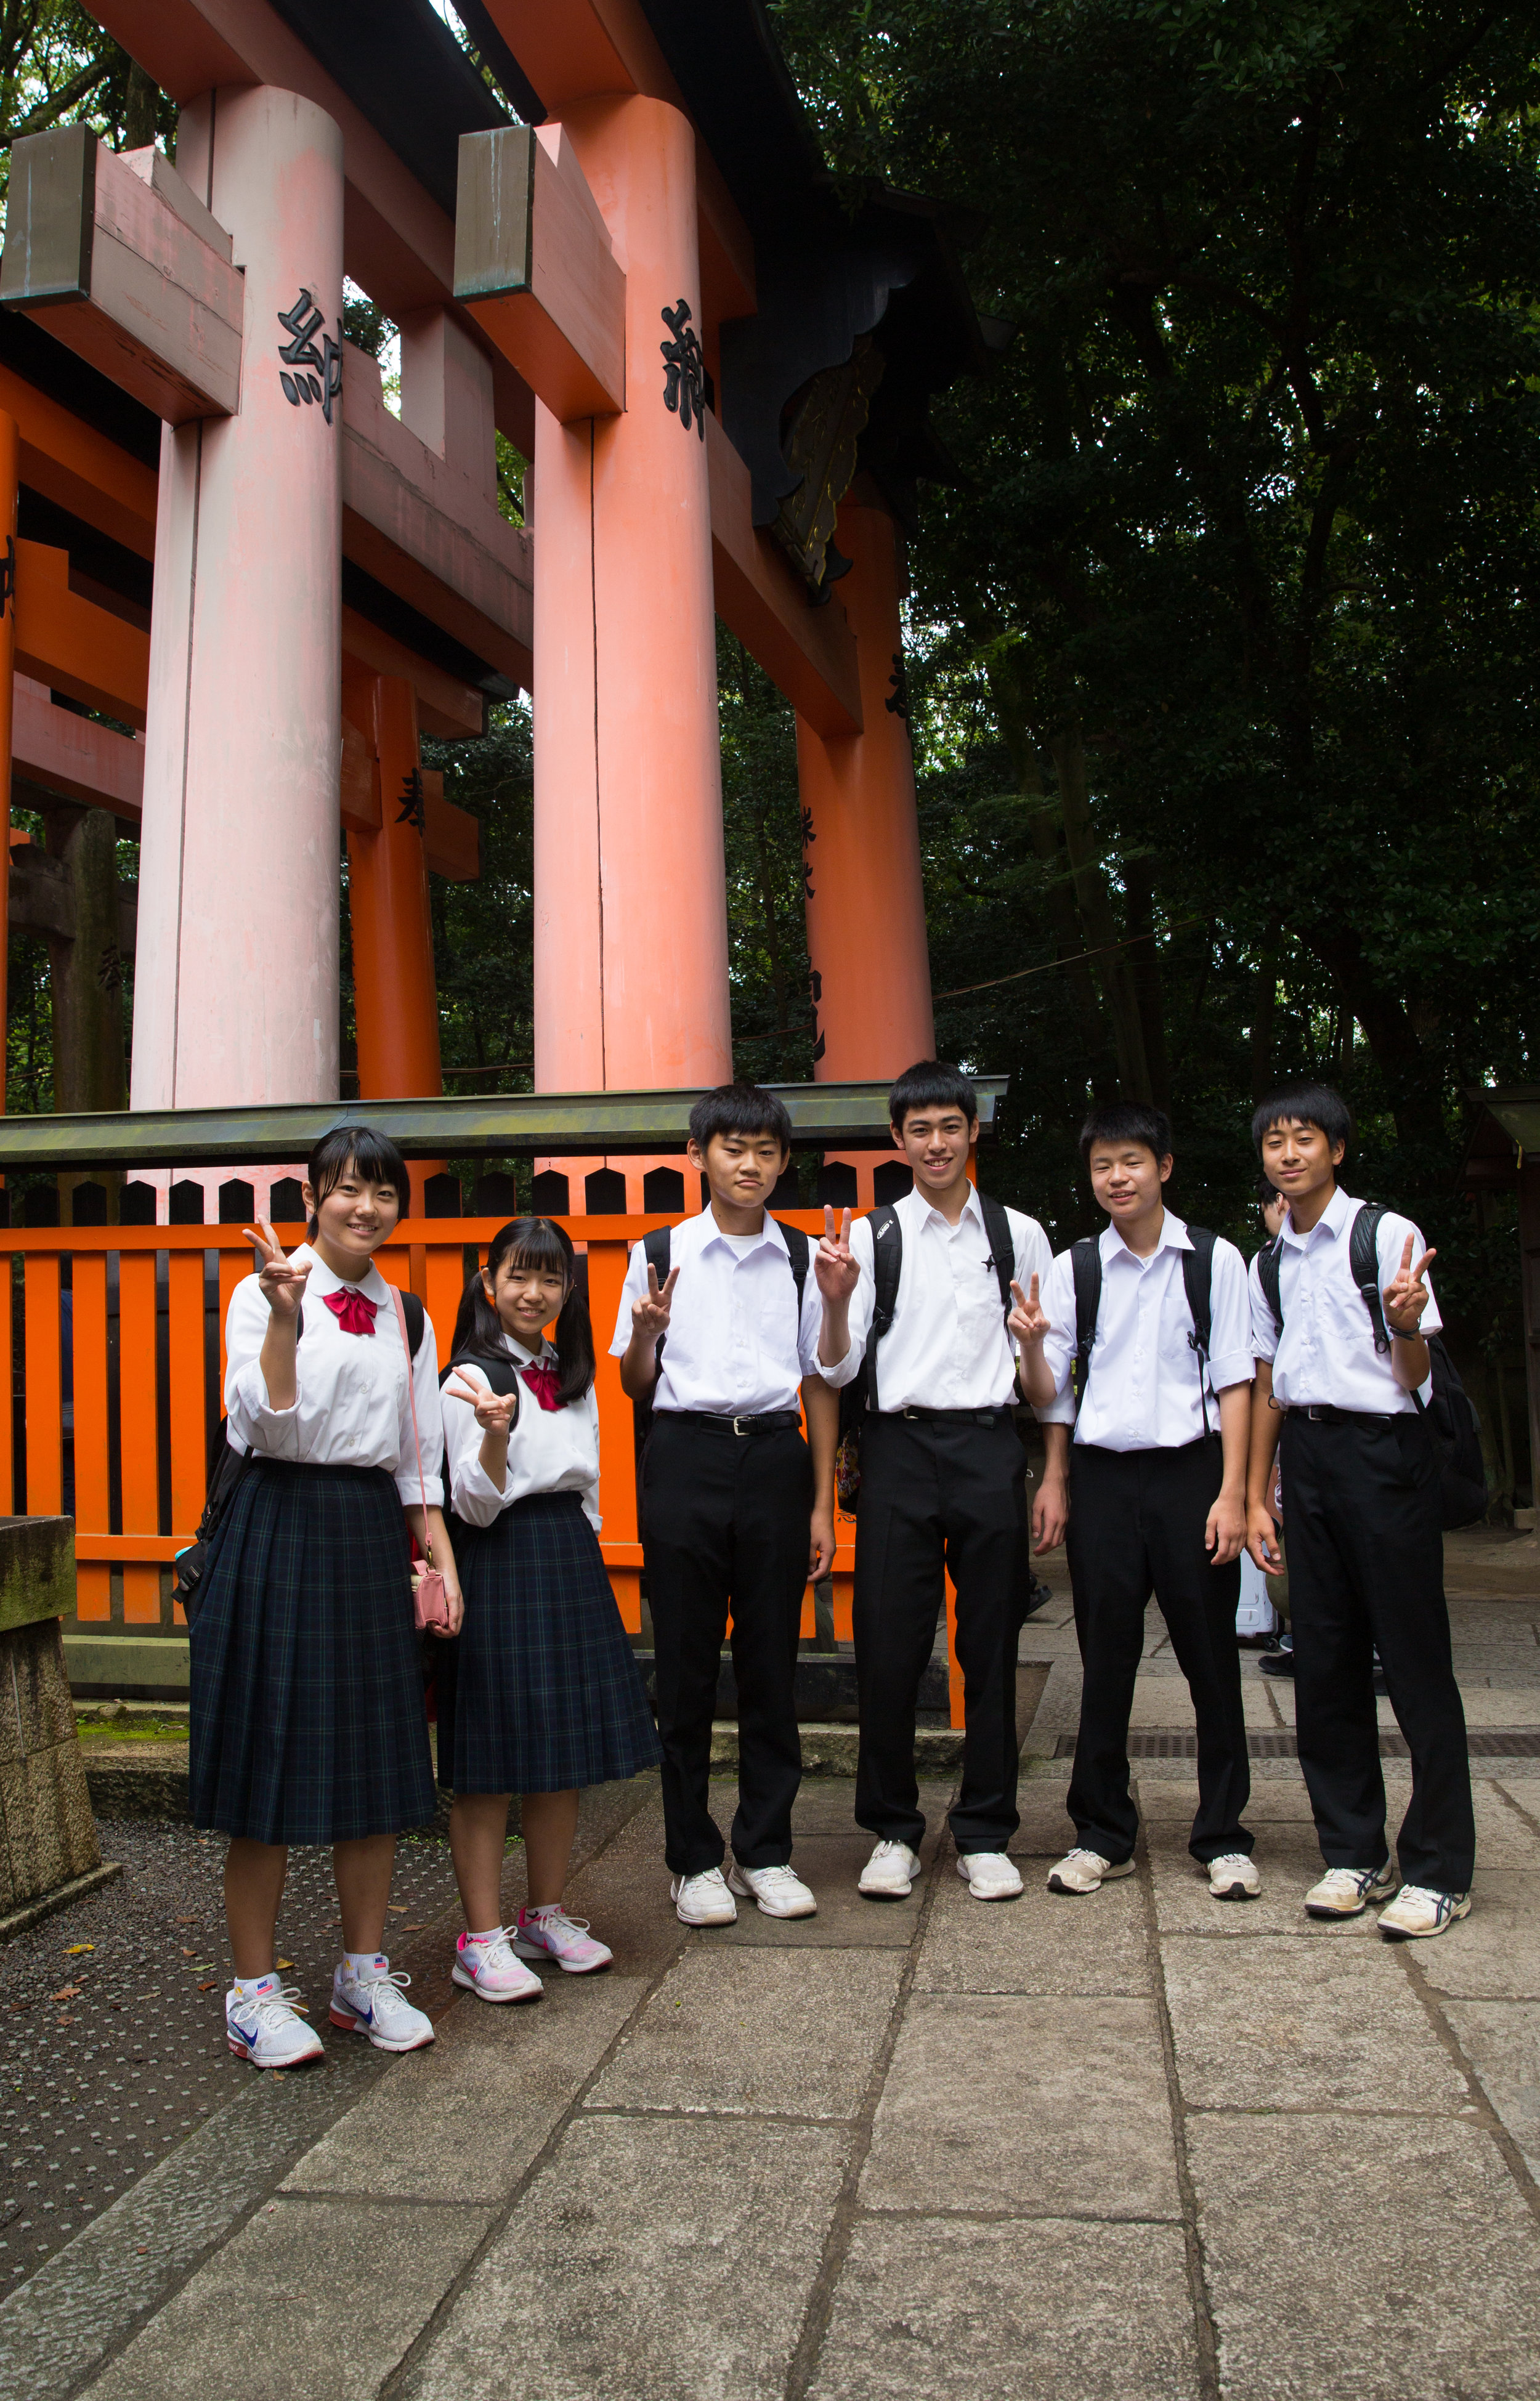 A group of kids on school trip exchanged their questions about our visit to Japan for a photo. Wish you all the best!